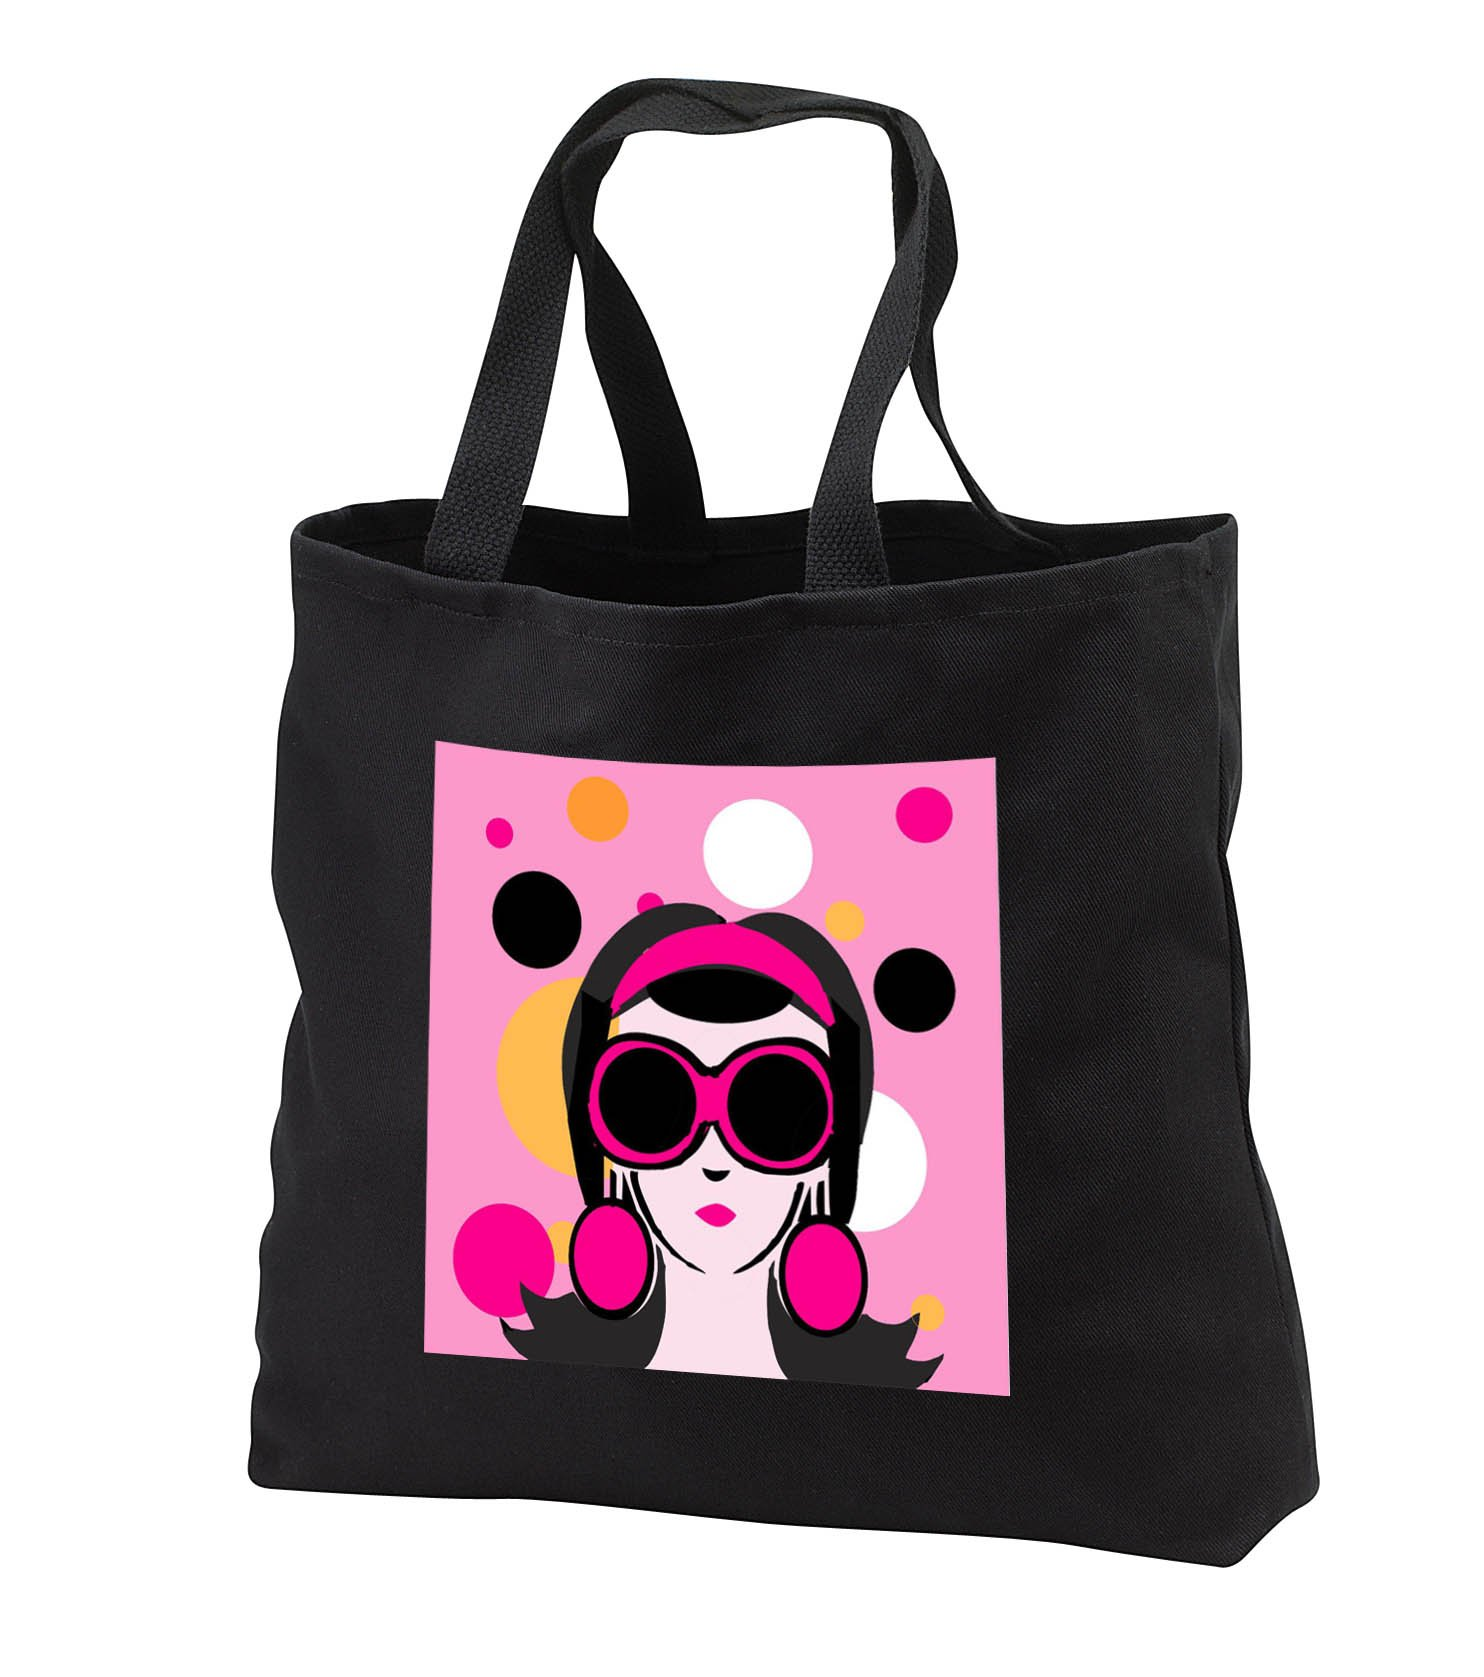 TNMGraphics Pop Art - Pop Mod Girl Pink and Black Big Sunglasses - Tote Bags - Black Tote Bag 14w x 14h x 3d (tb_286302_1)